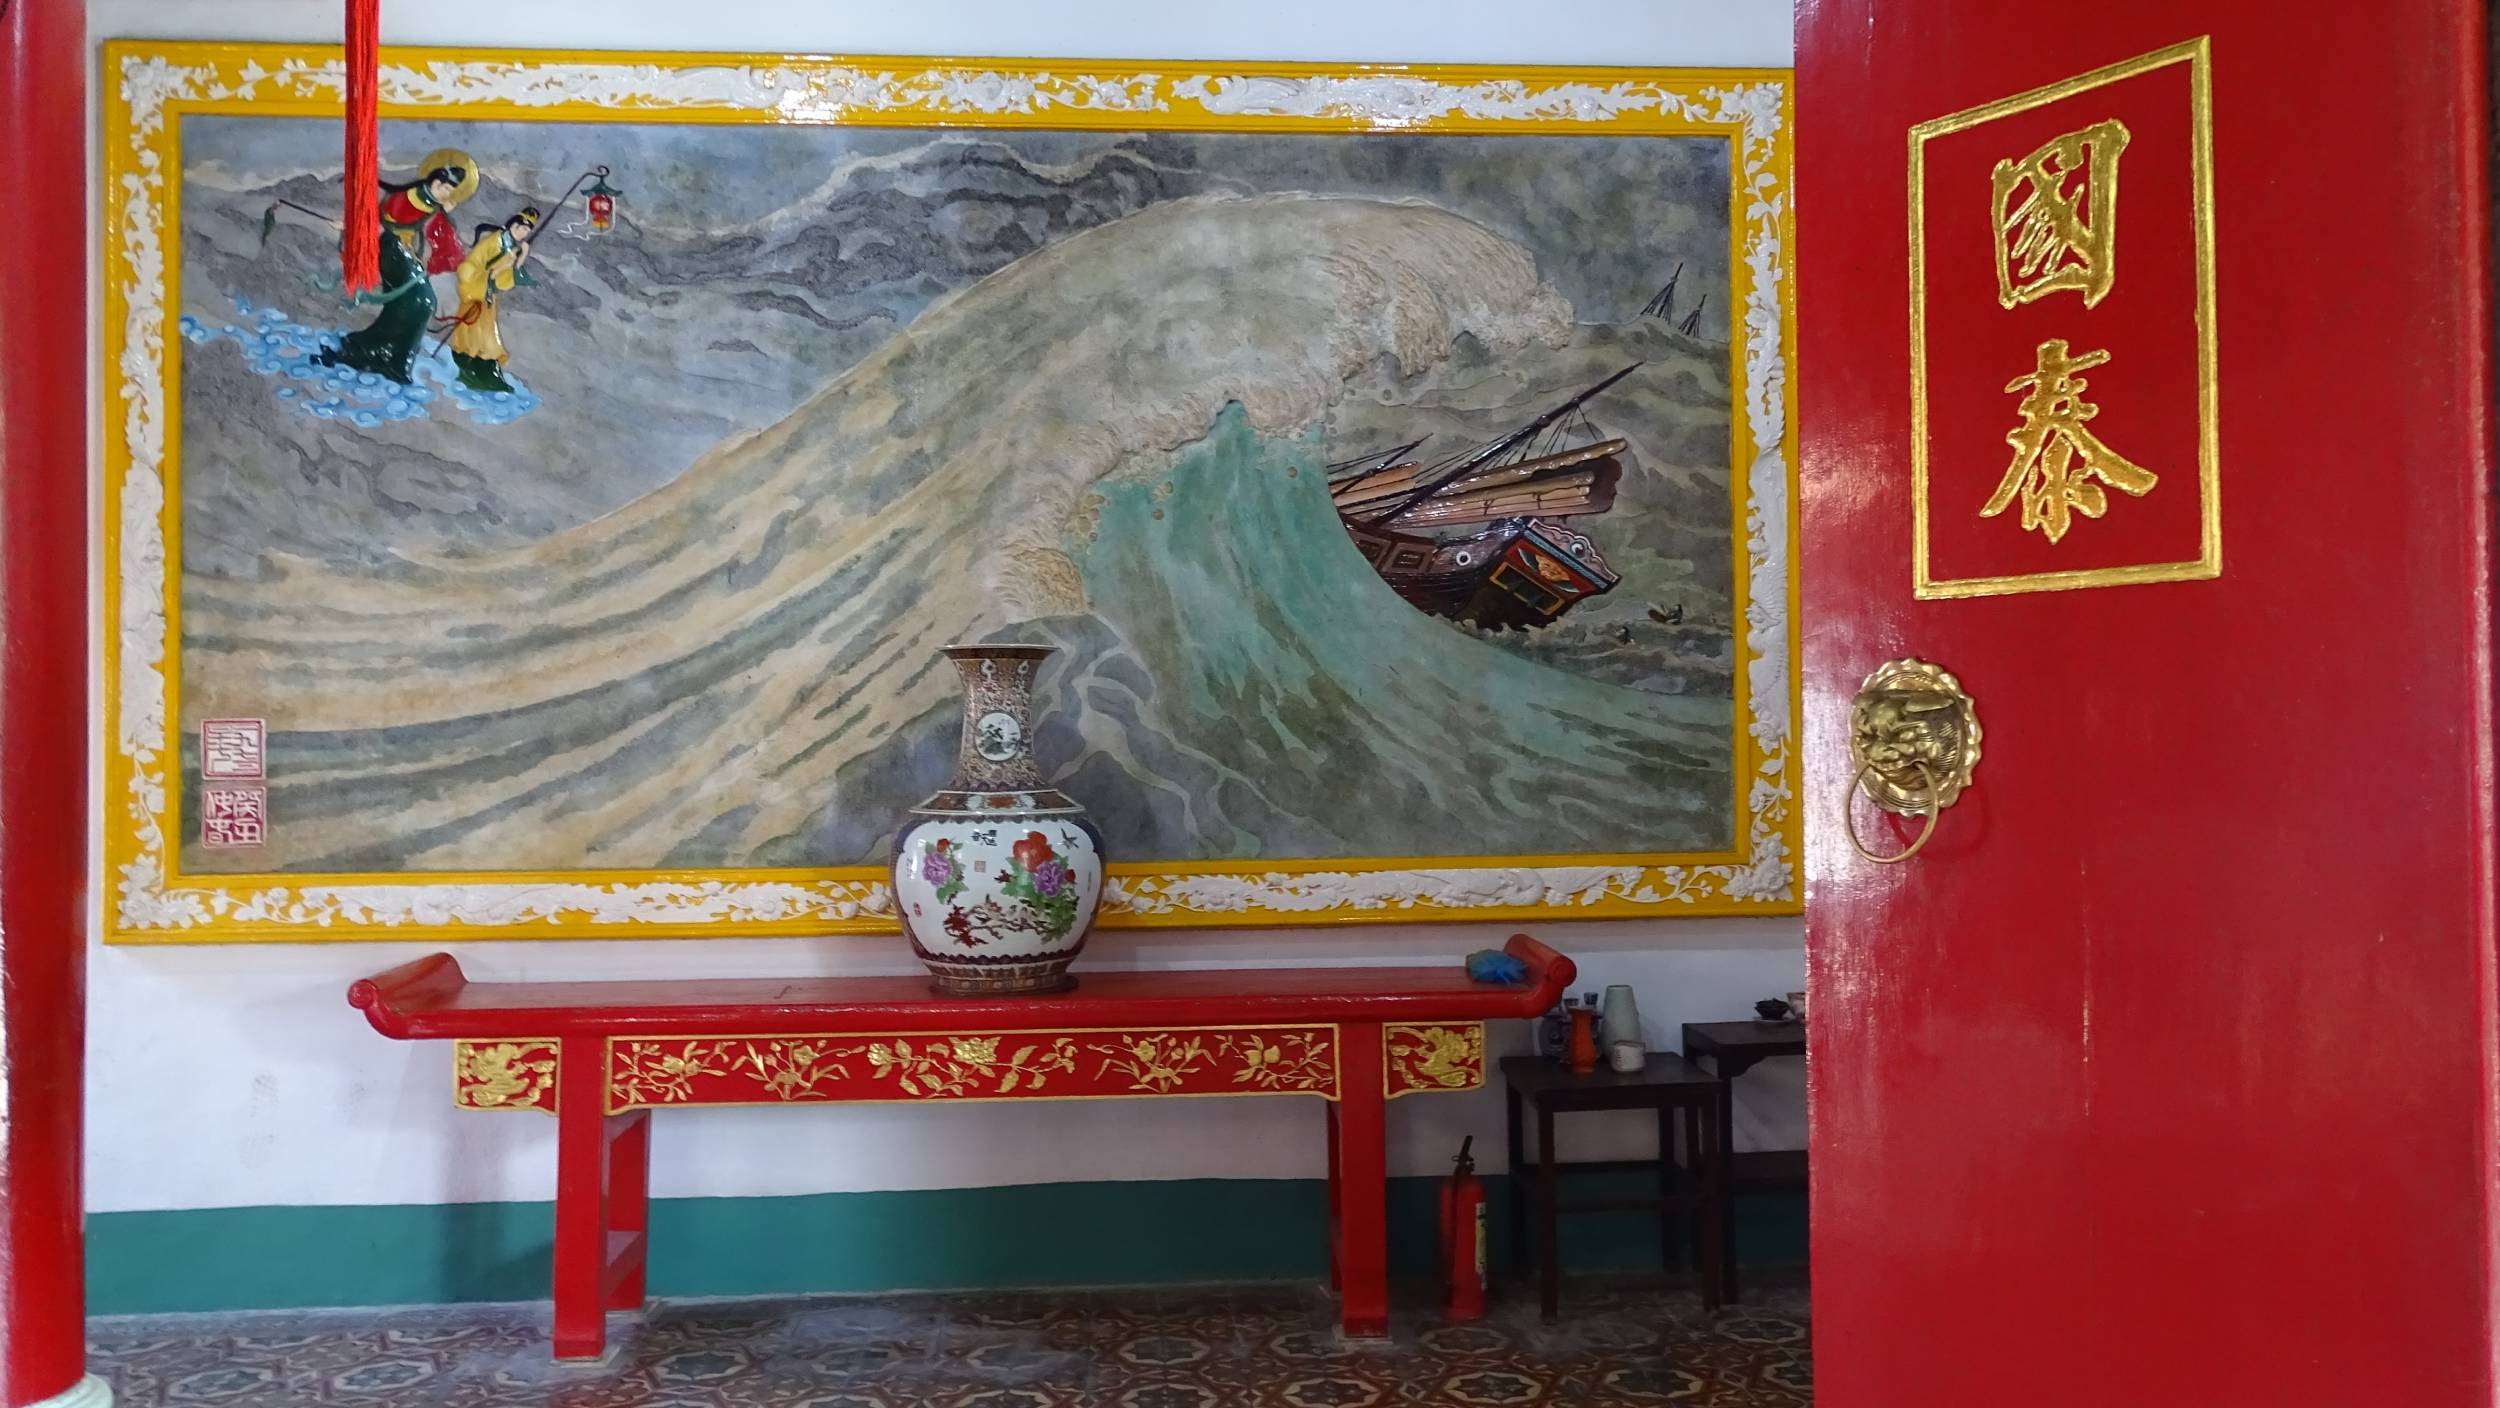 An open red door with Chinese characters, a red table with a vase and a painting with a marine scene inside Phuc Kien Assembly Hall